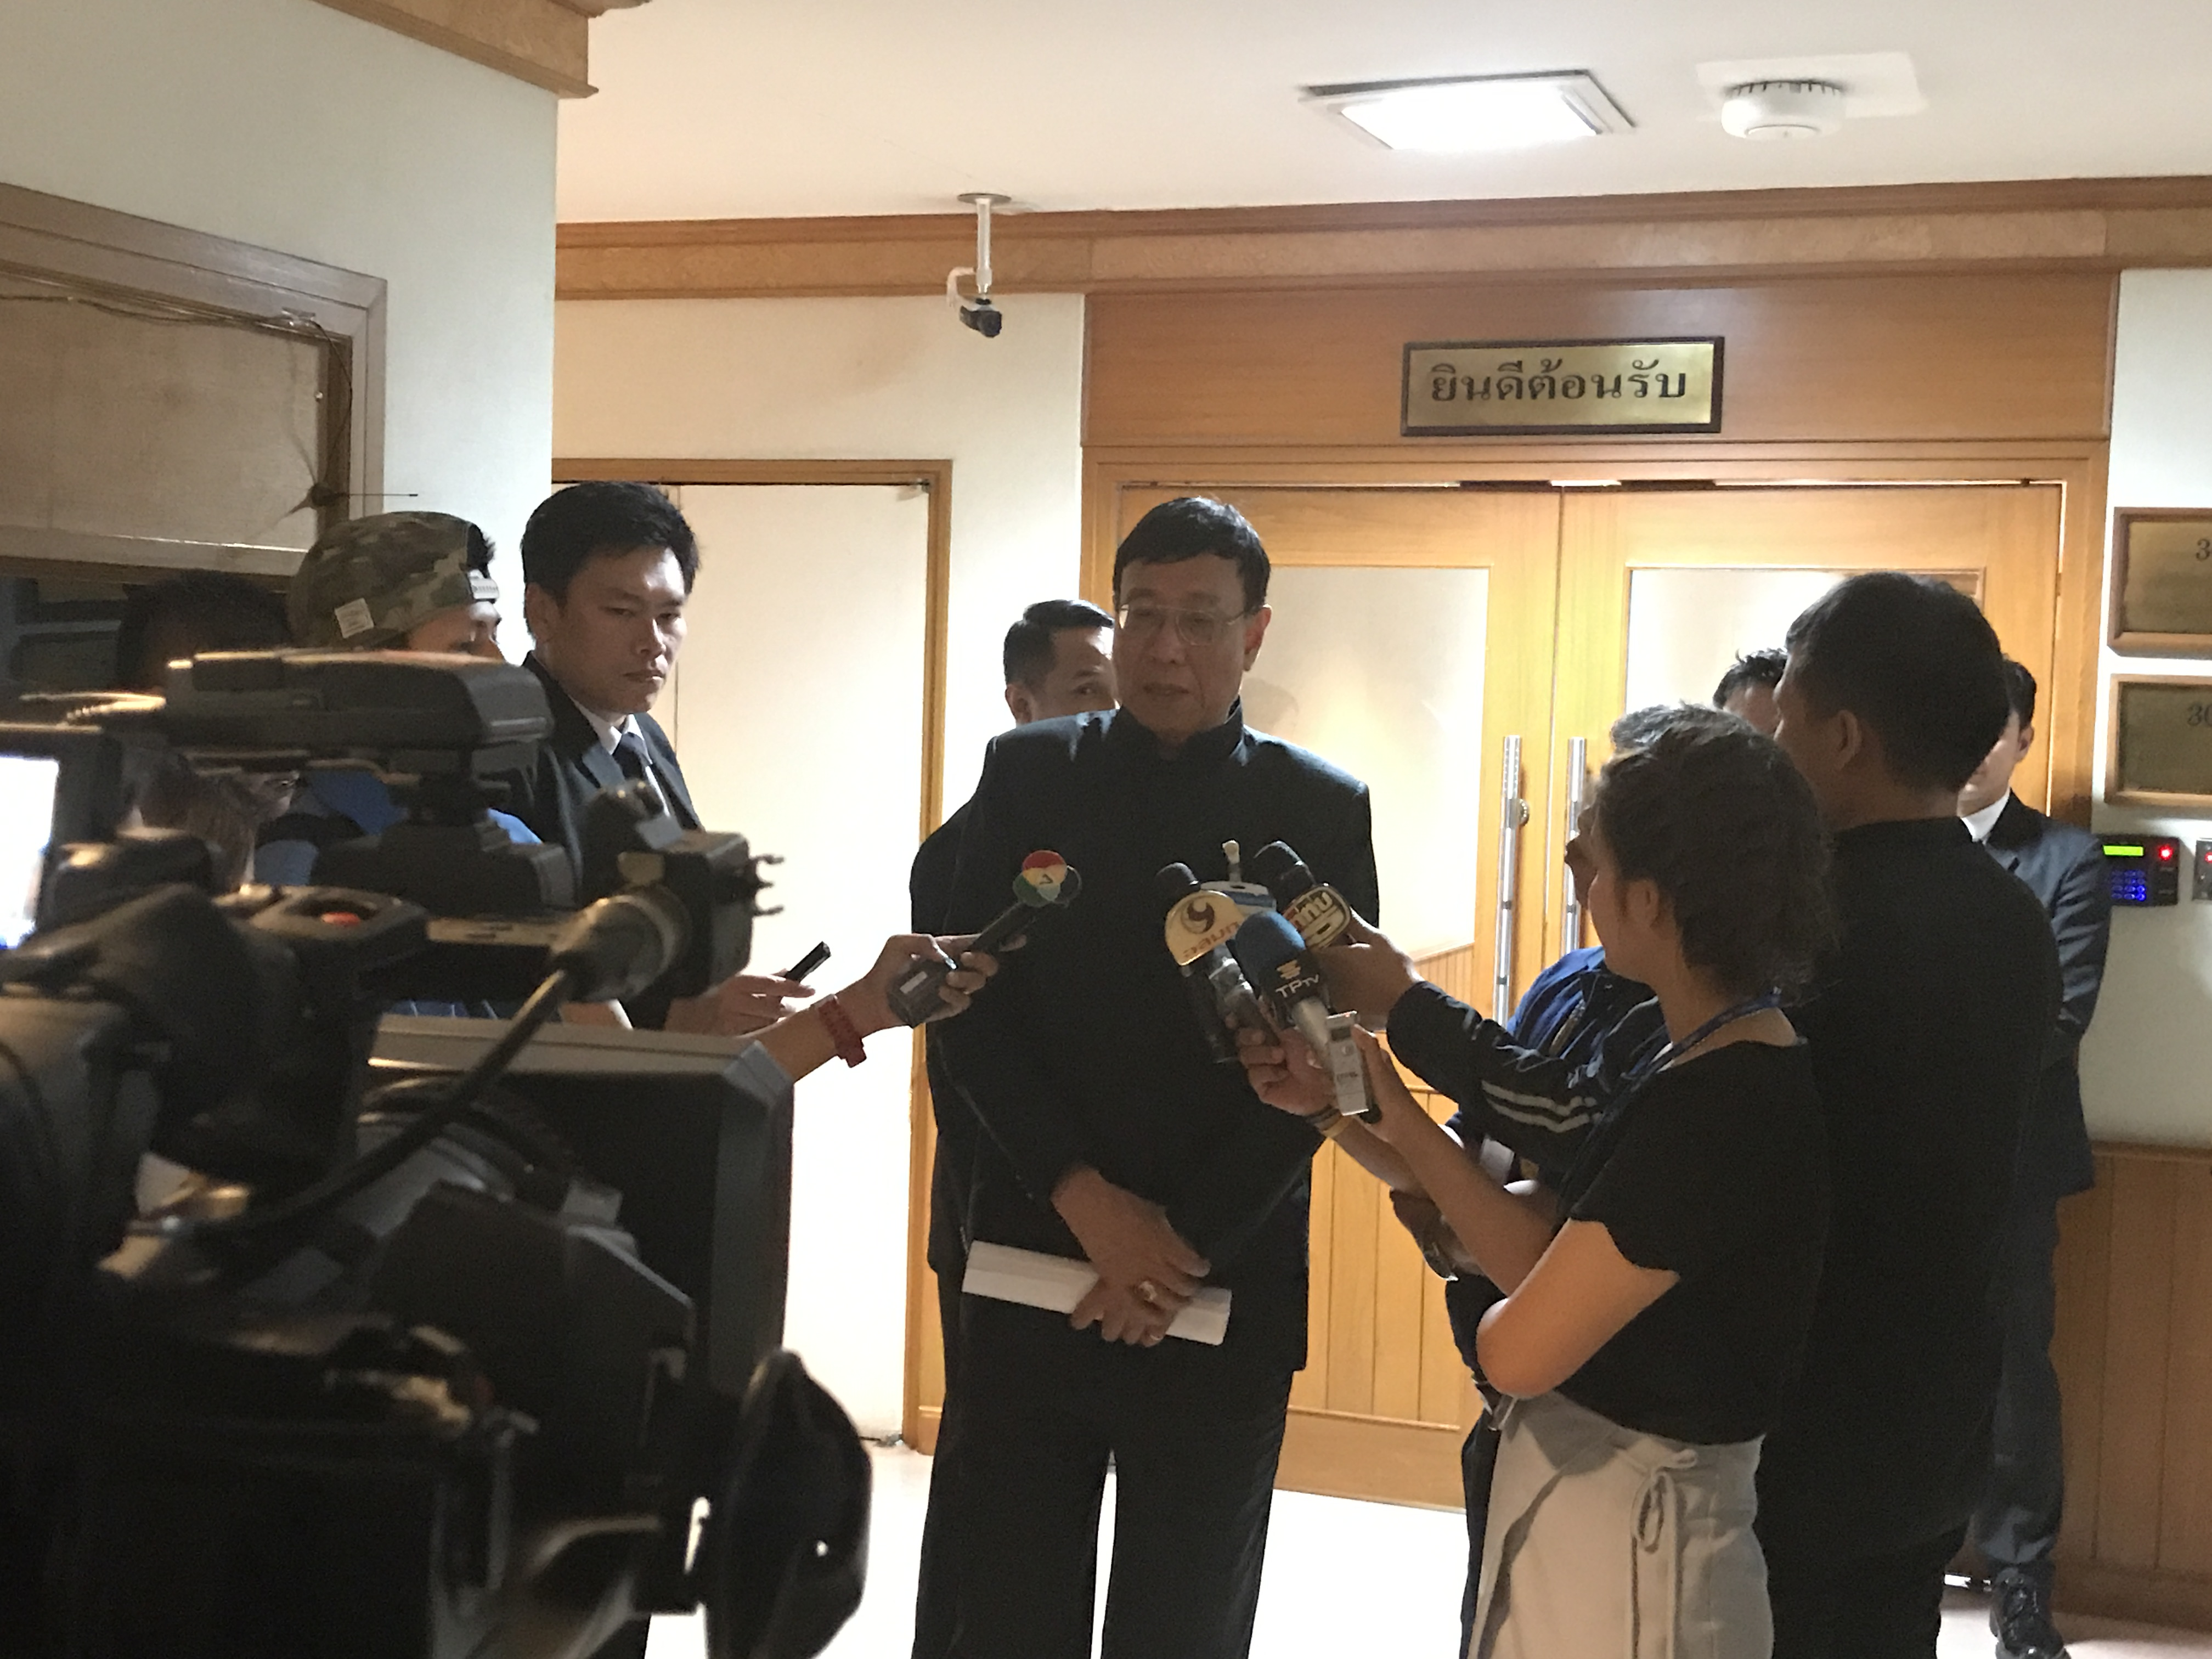 Thailand News - 19-04-17 4 NNT NLA to change meeting regulations to go in line with new Constitution 1